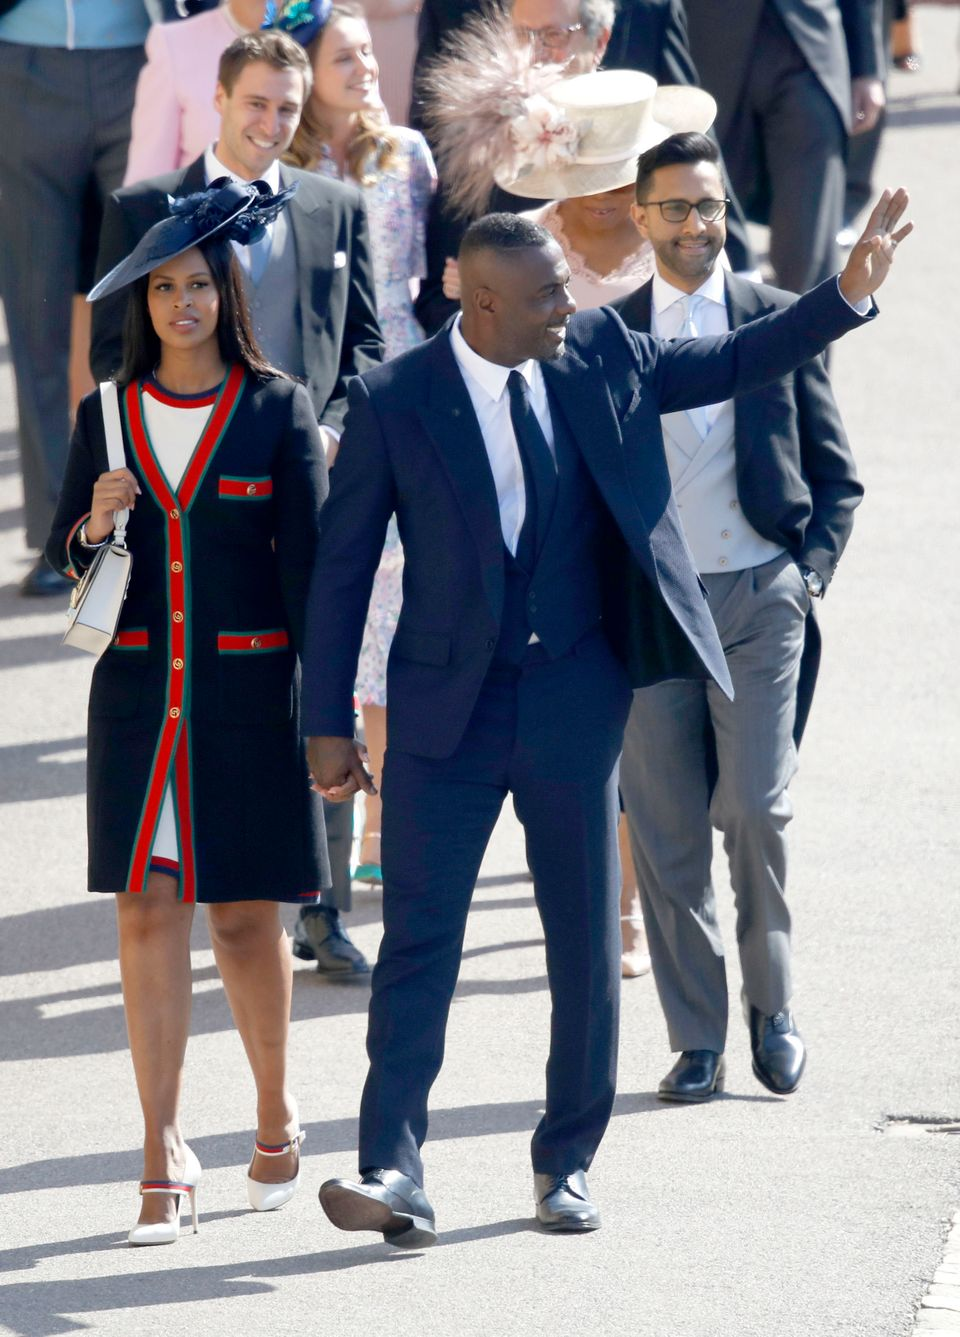 Idris Elba and Sabrina Dhowre arriving at the